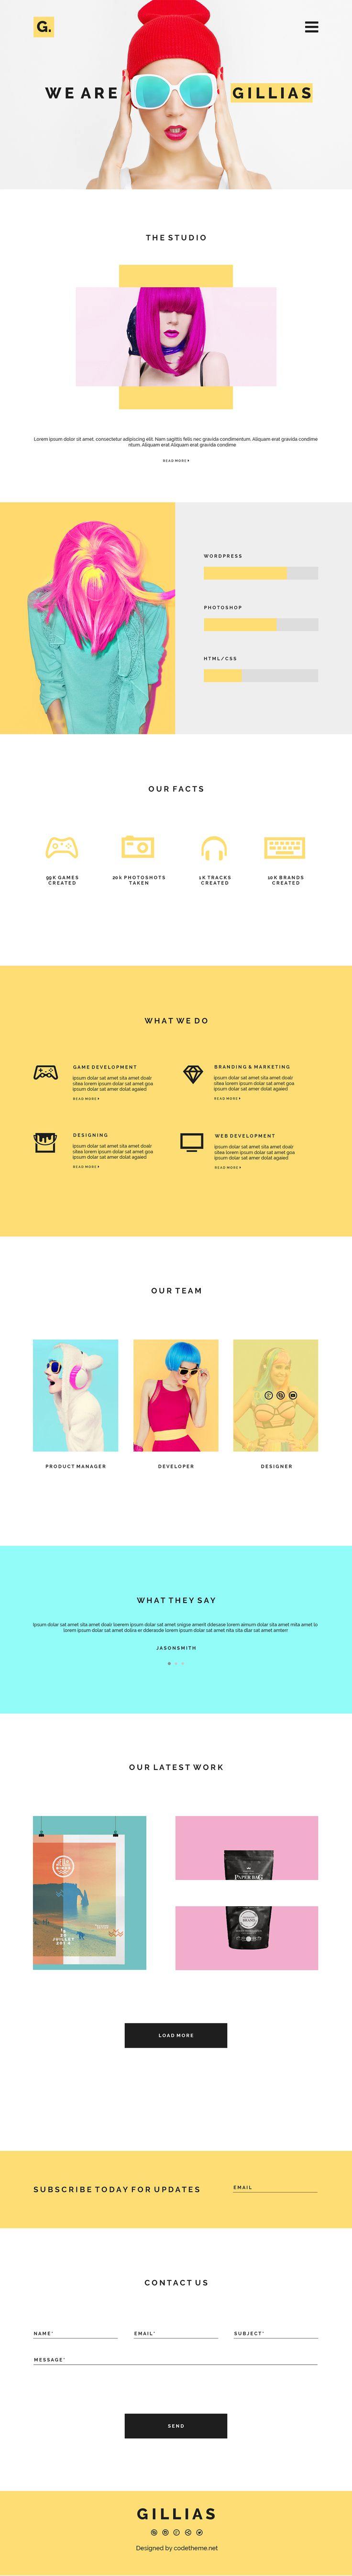 Gillias an Agency Web Design on Behance https://vimeo.com/xtremefreelance